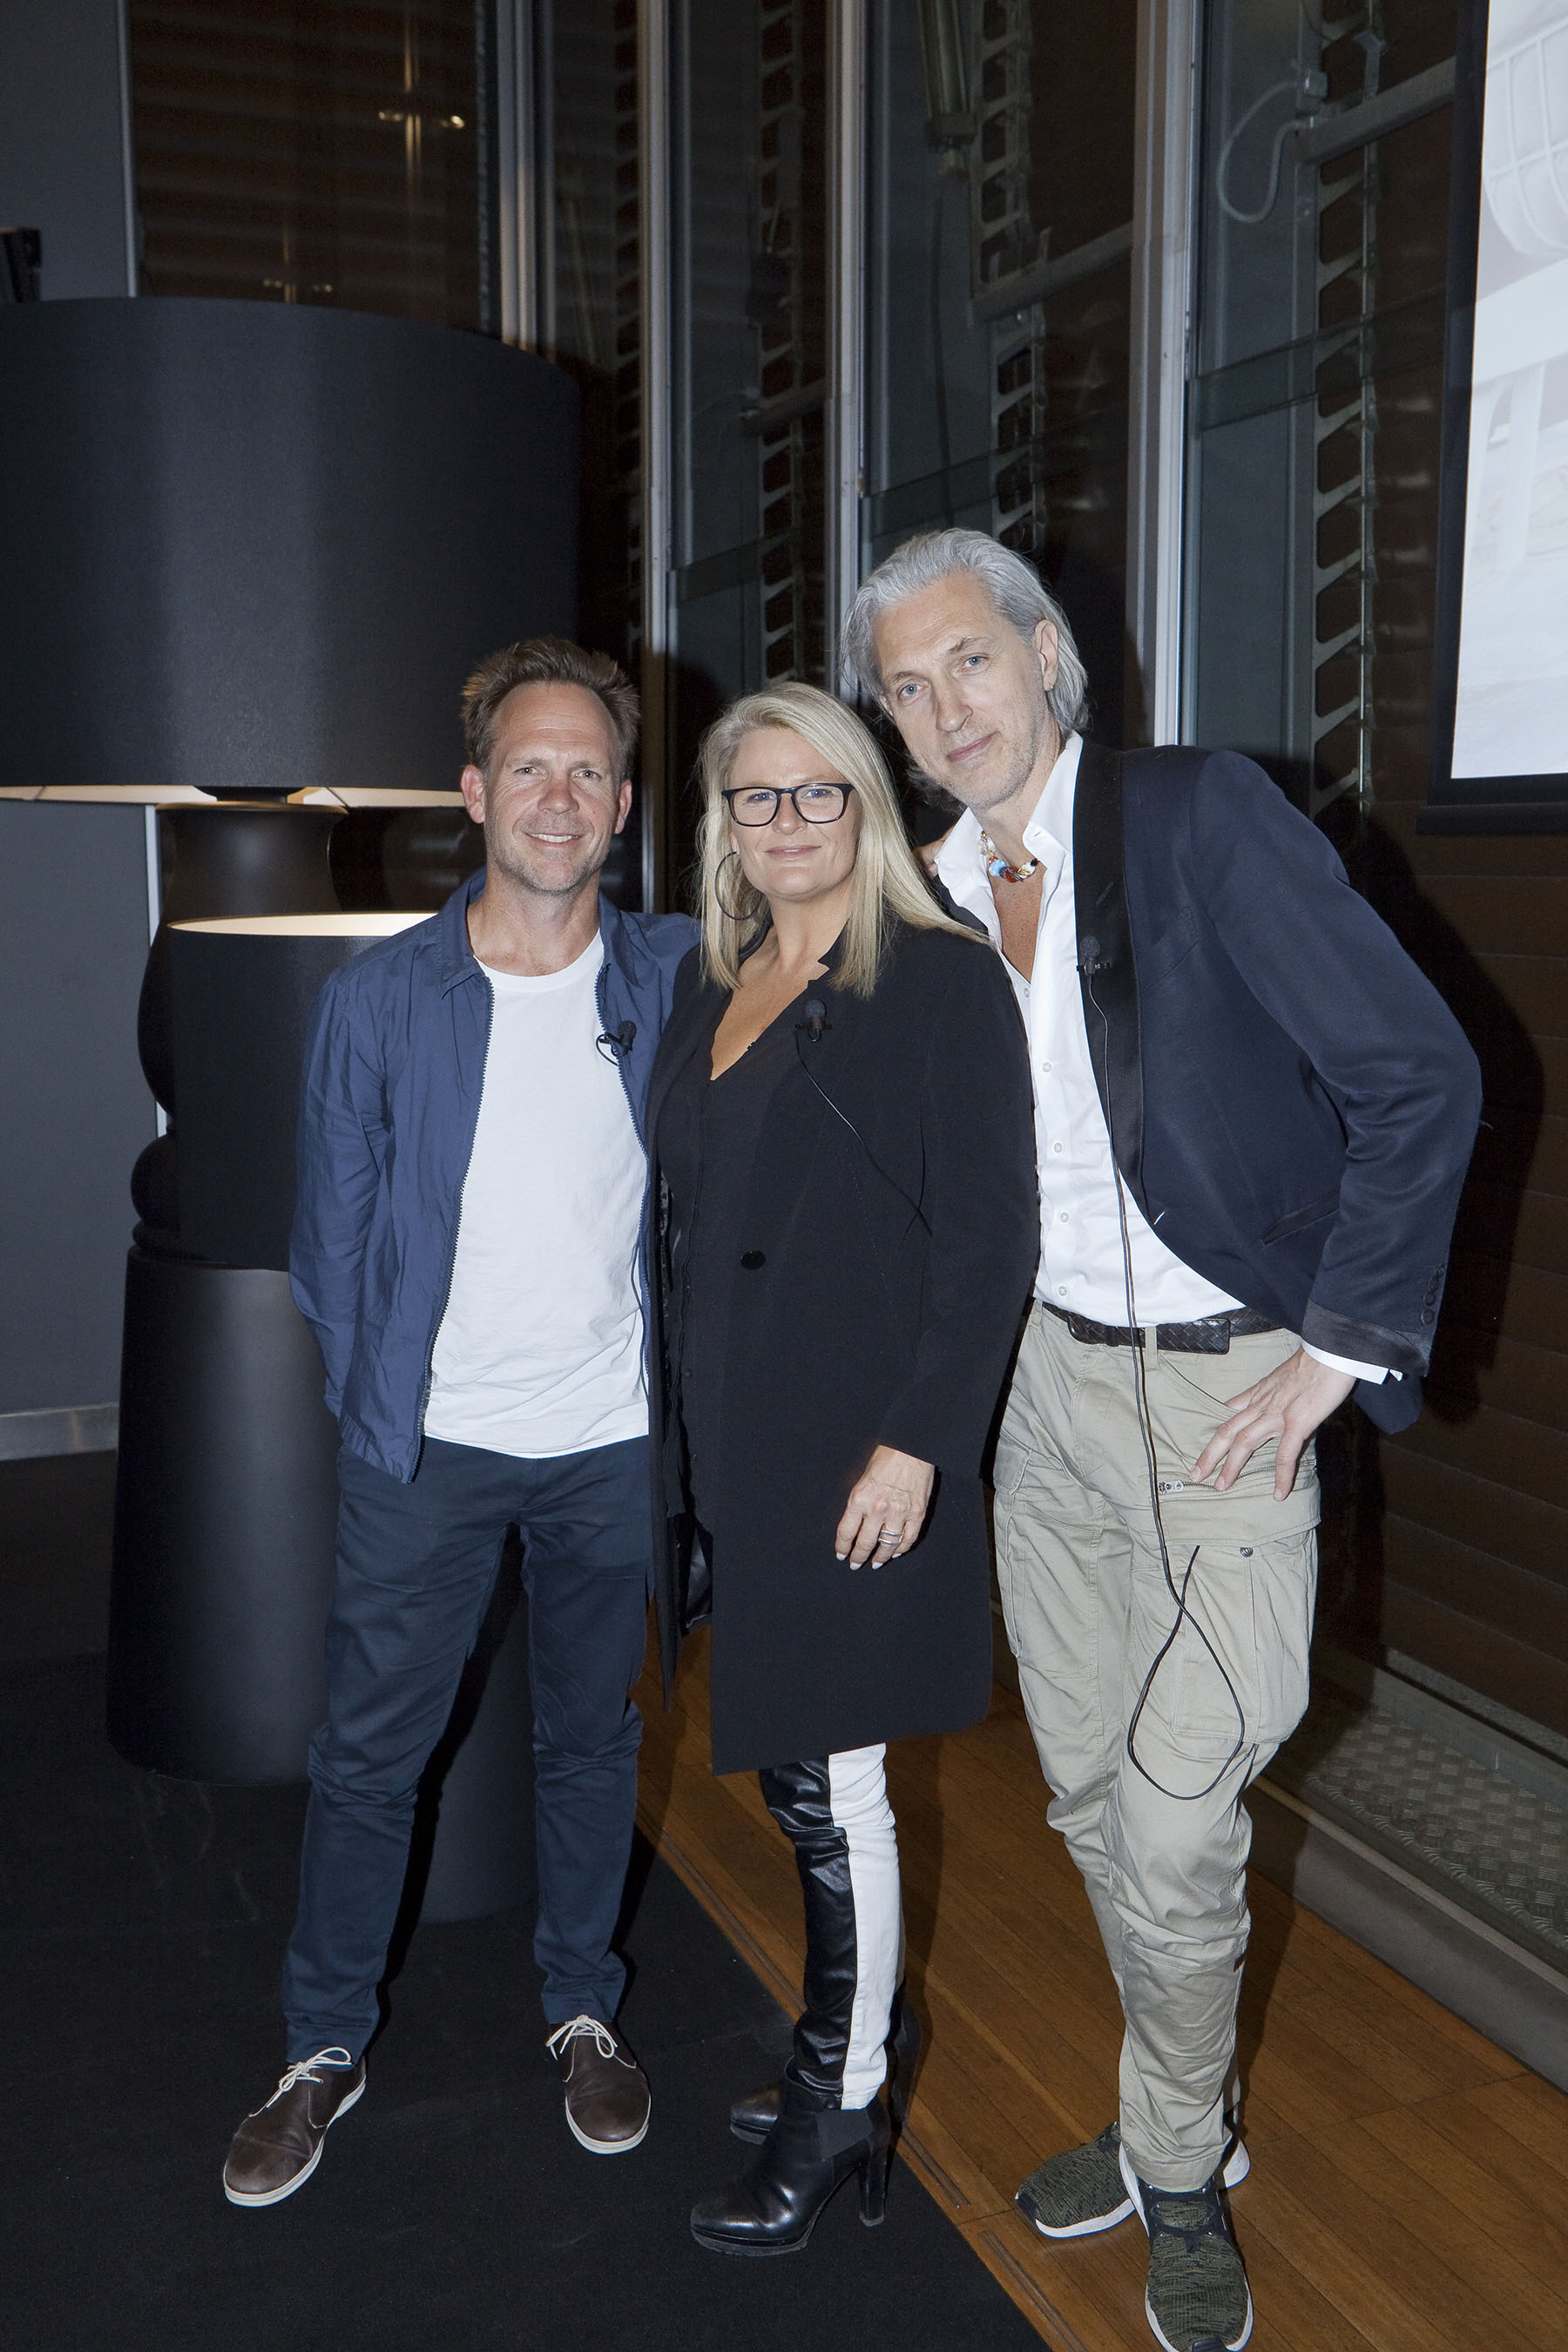 Jonathan Richards, Tracey Wiles and Marcel Wanders discussed the Future of Hotels with architects and designers at the Mint in Sydney.